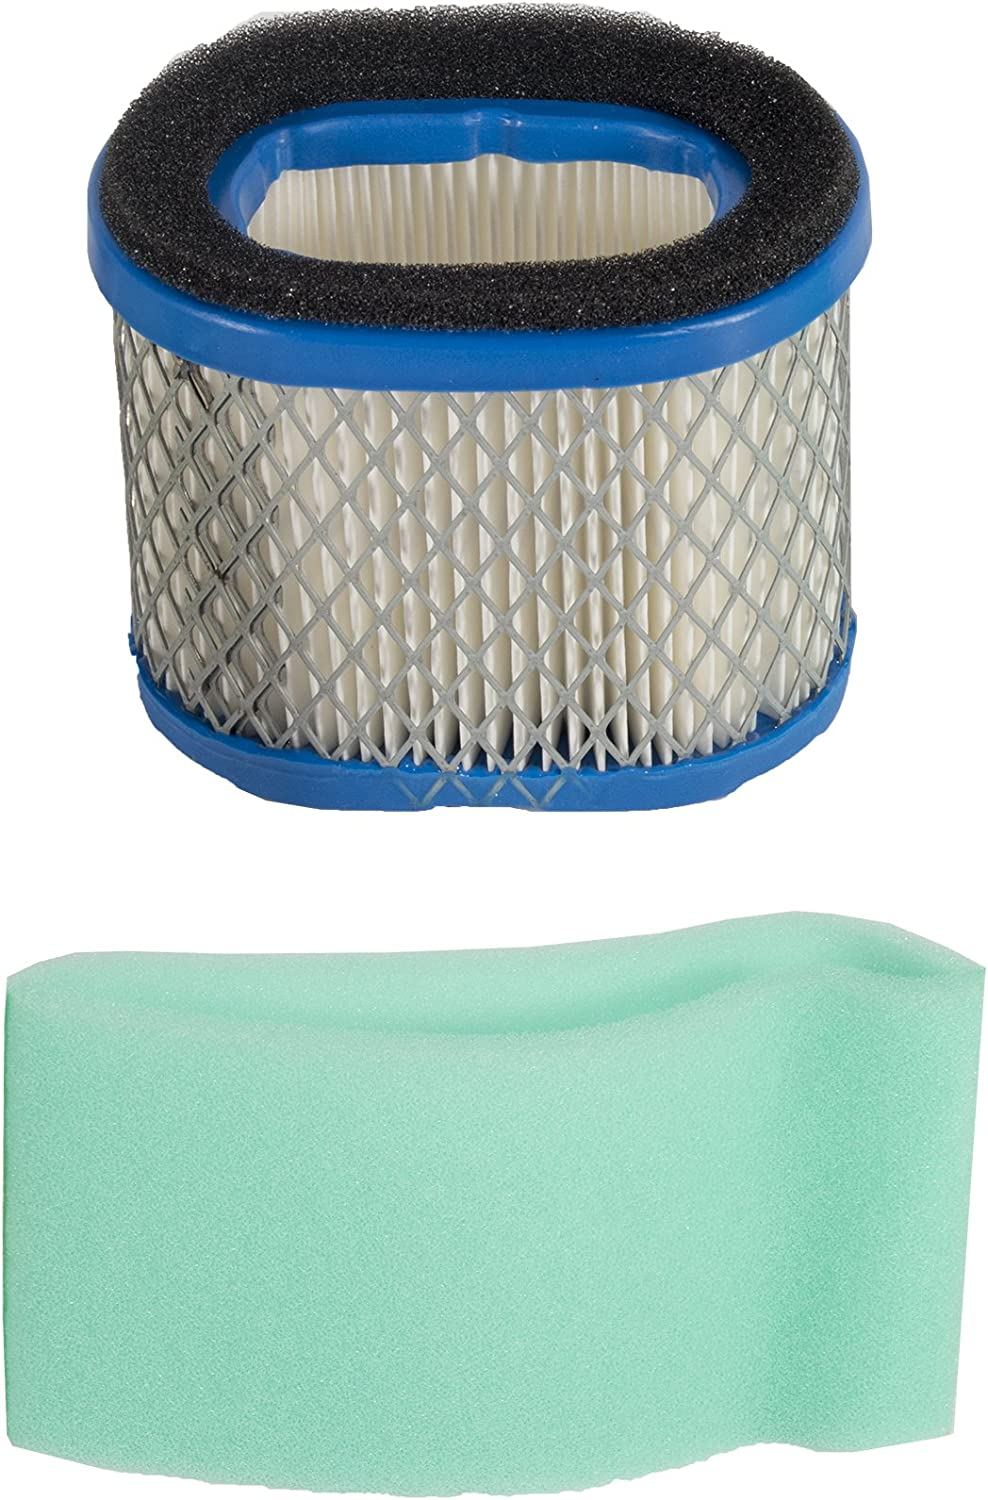 Maxpower 334363 Air Filter For Briggs & Stratton 5.5 - 6.5 HP Intek Engines Replaces 498596, 498596S, 690610, 697029 and John Deere M147431,White